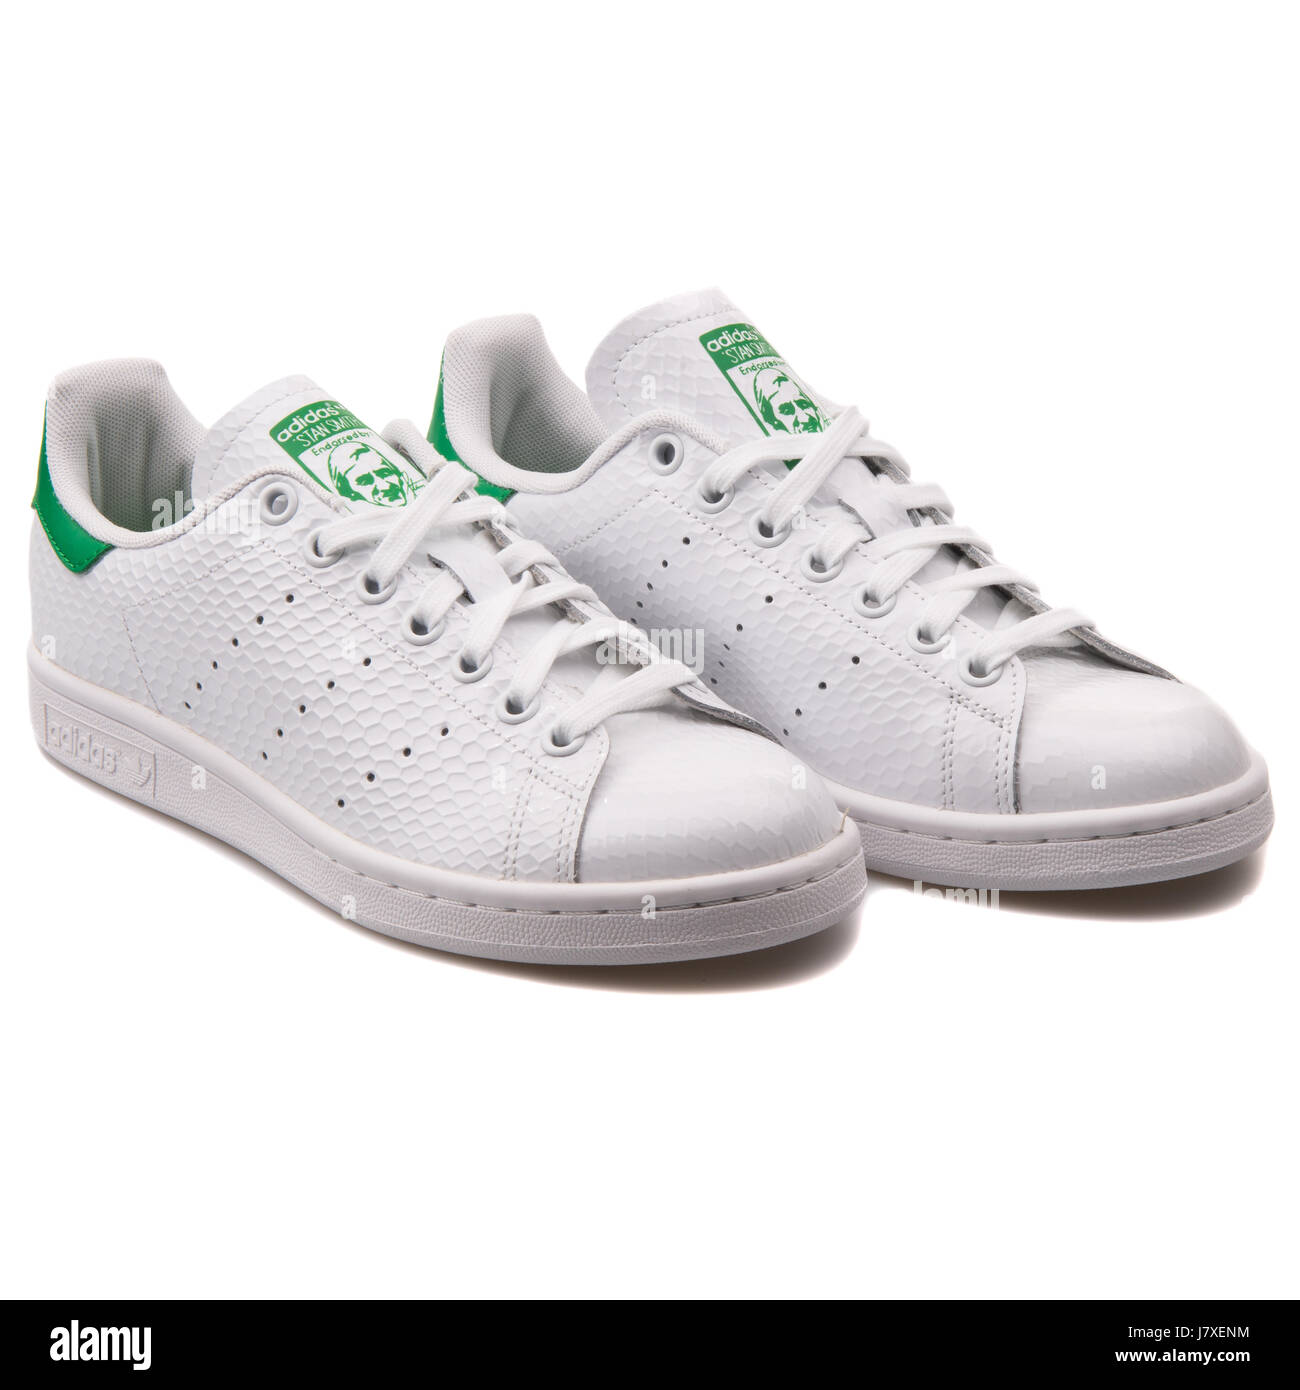 new style 5ed81 8816c Adidas Originals Stan Smith W Women s White with Green Sneakers - B35443 -  Stock Image